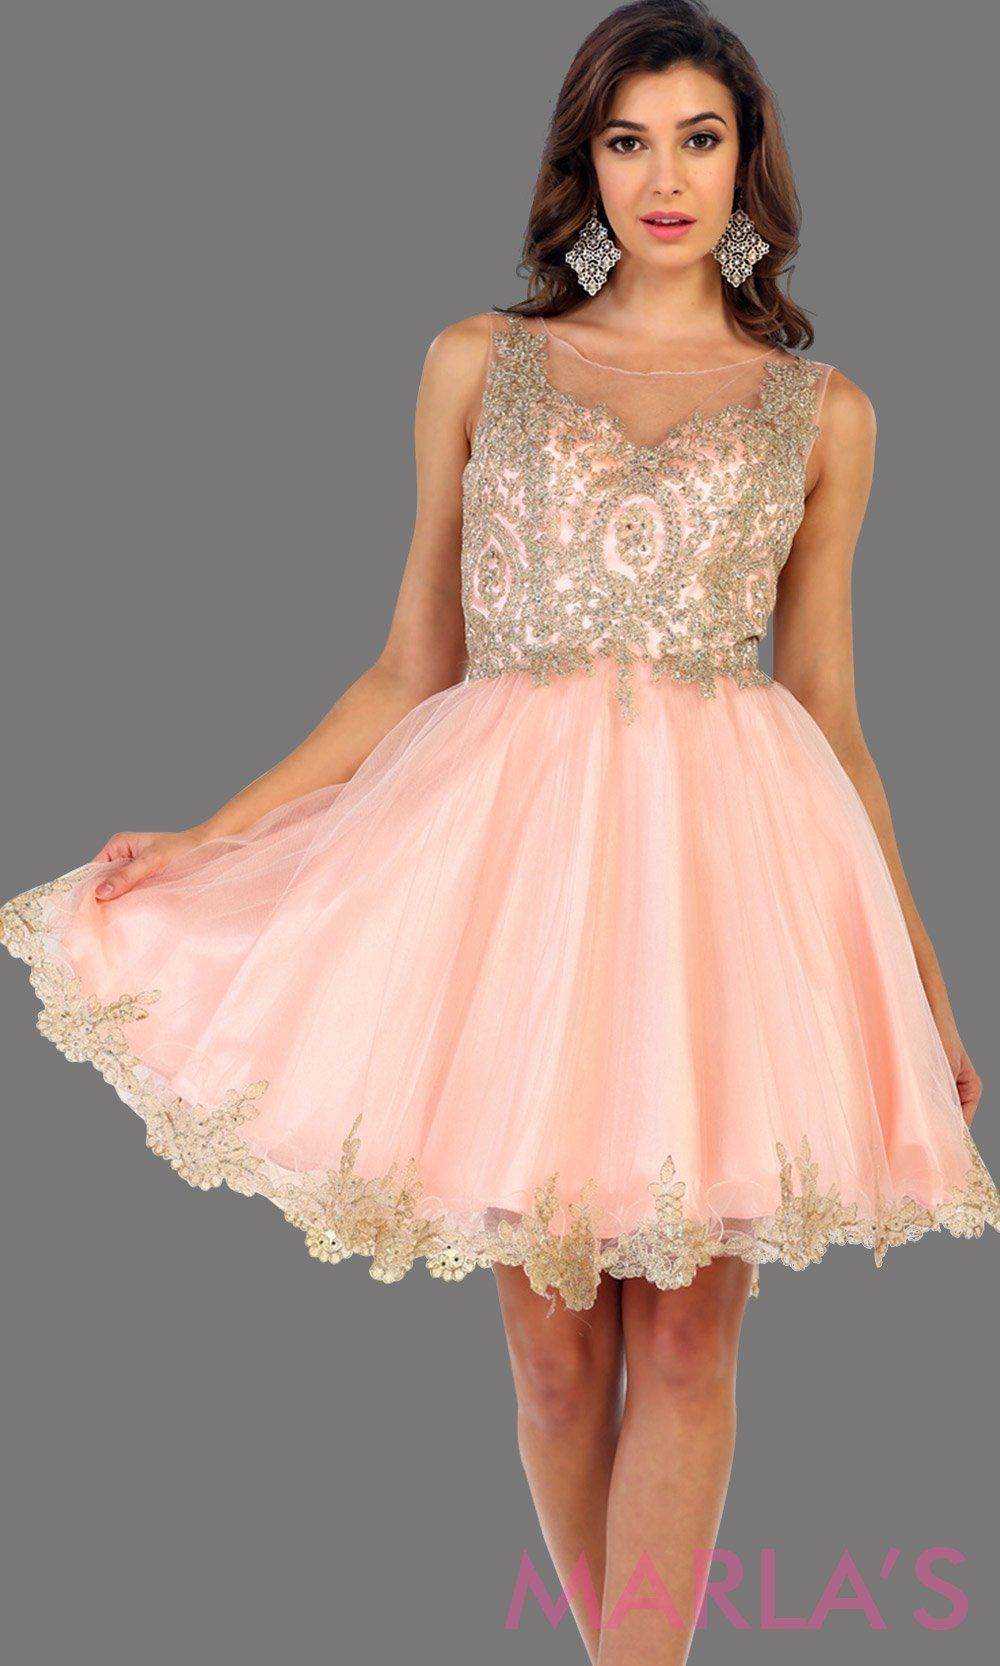 c8d55f4f34a Short high neck pink grade 8 grad puffy dress with gold lace. This blush  grade 8 graduation short dress and pretty. Can be worn for quinceanera  damas